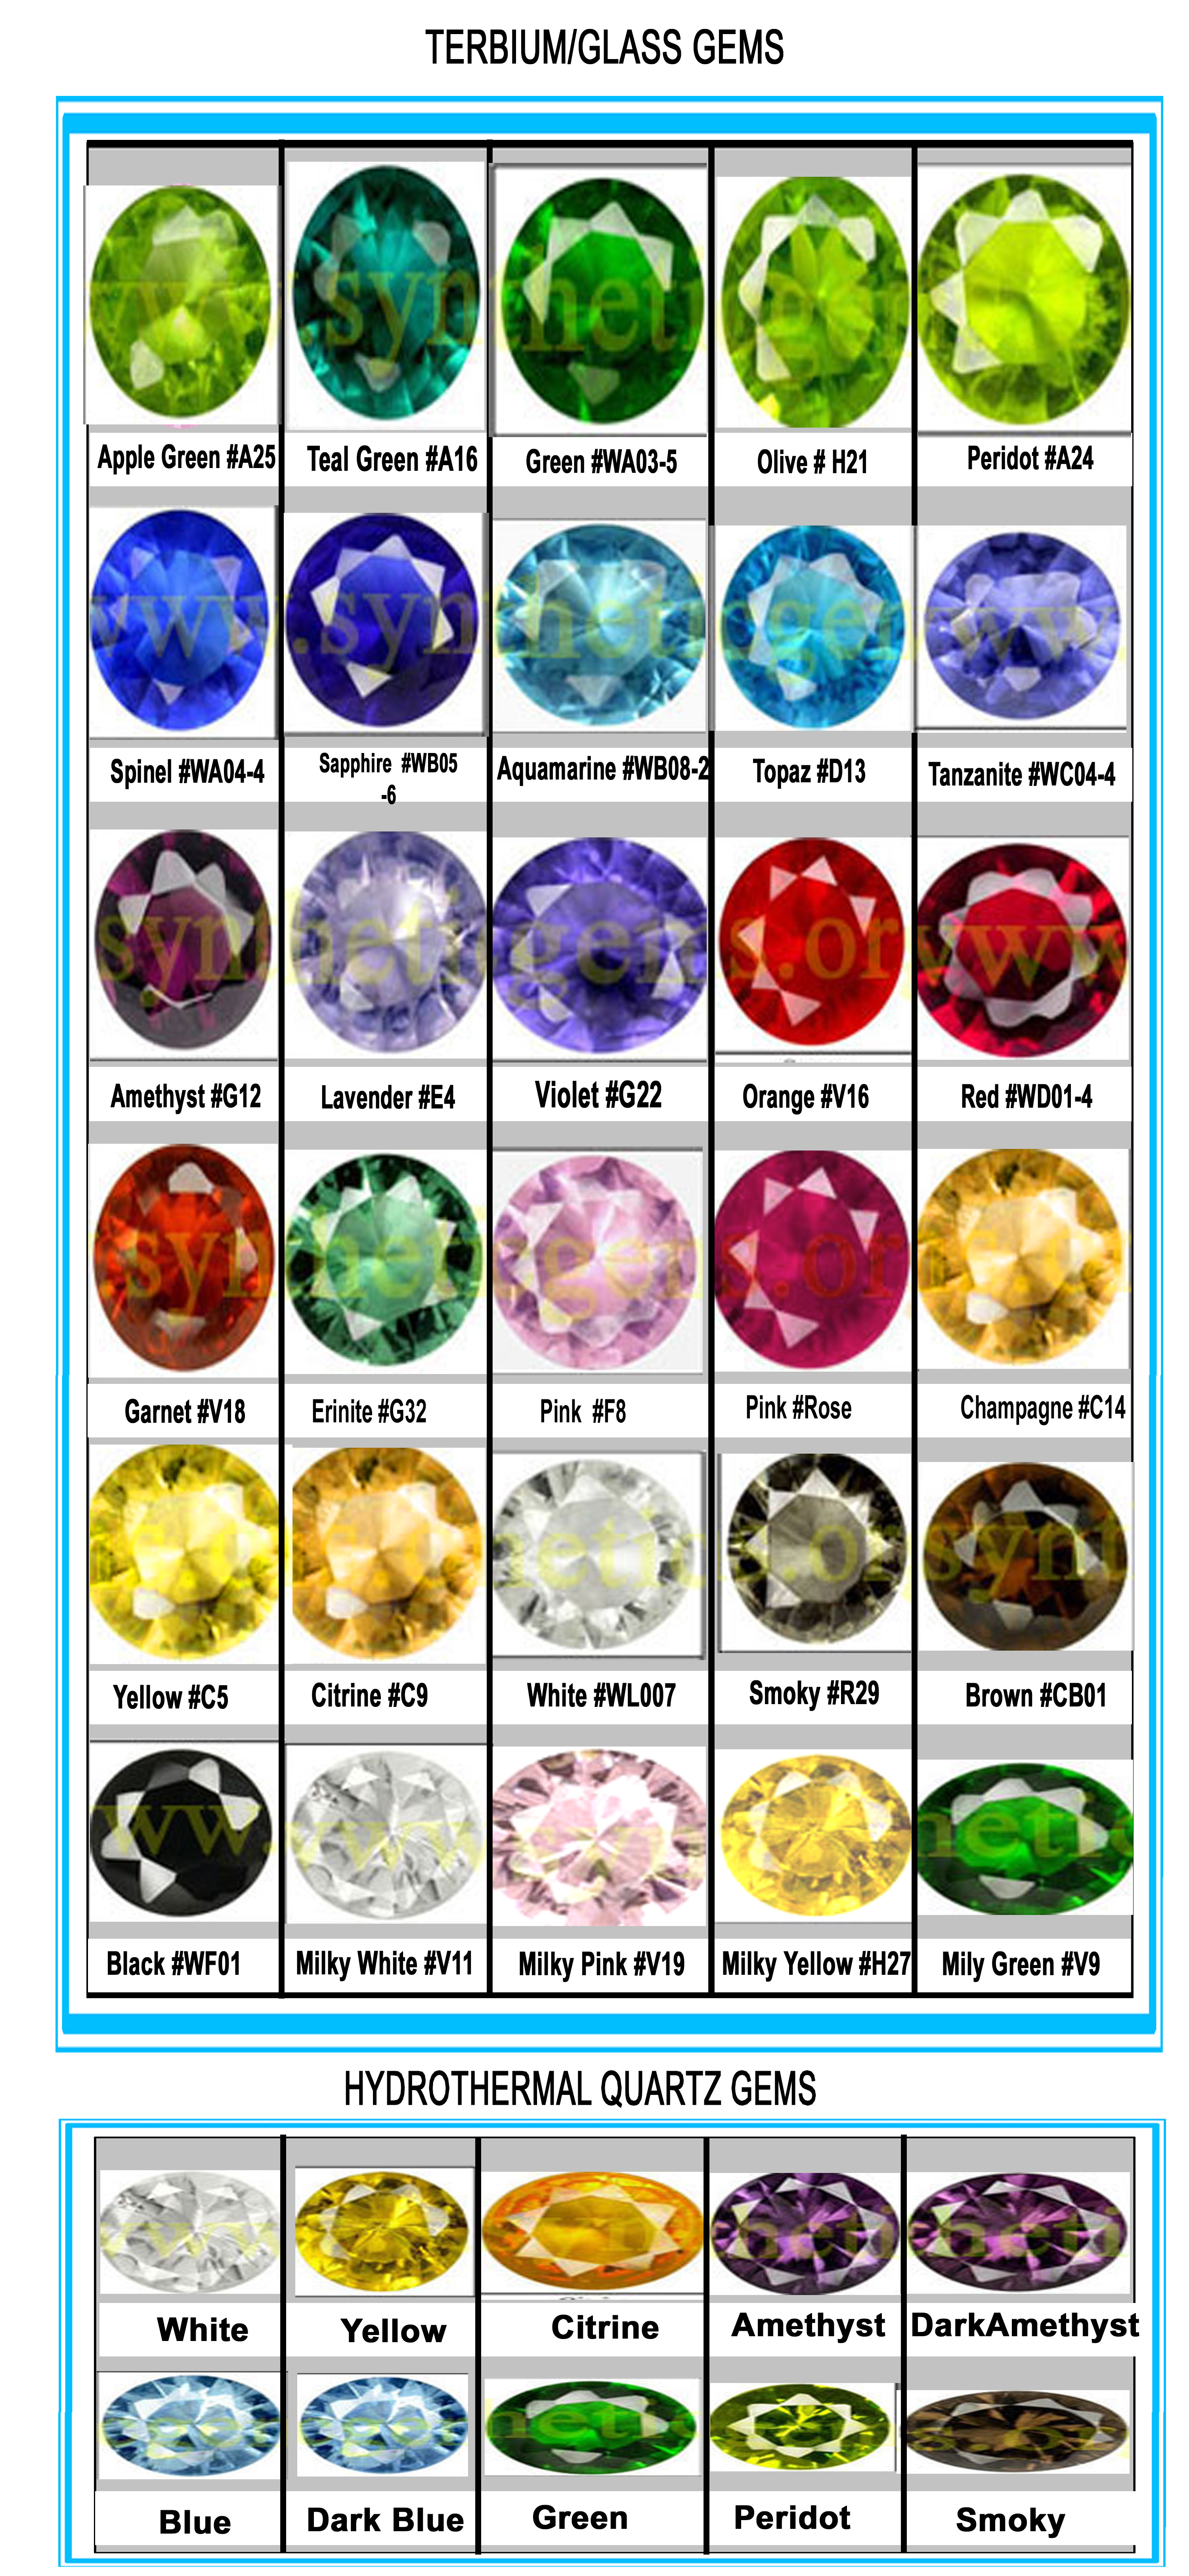 Spinel and Corundum